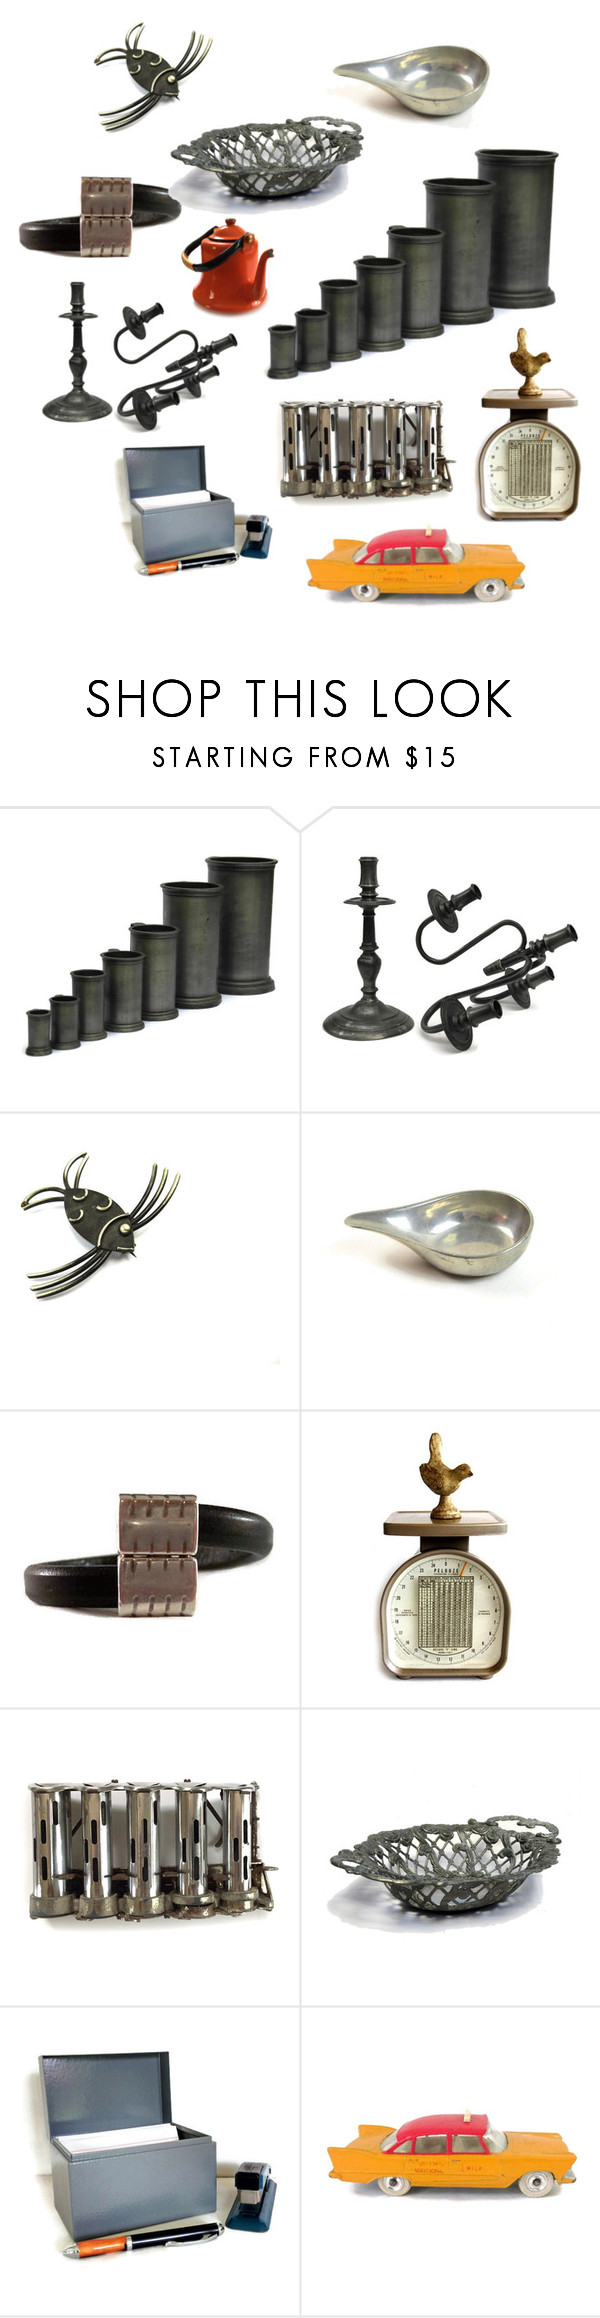 """Heavy Metal"" by patack ❤ liked on Polyvore featuring interior, interiors, interior design, home, home decor, interior decorating and vintage"